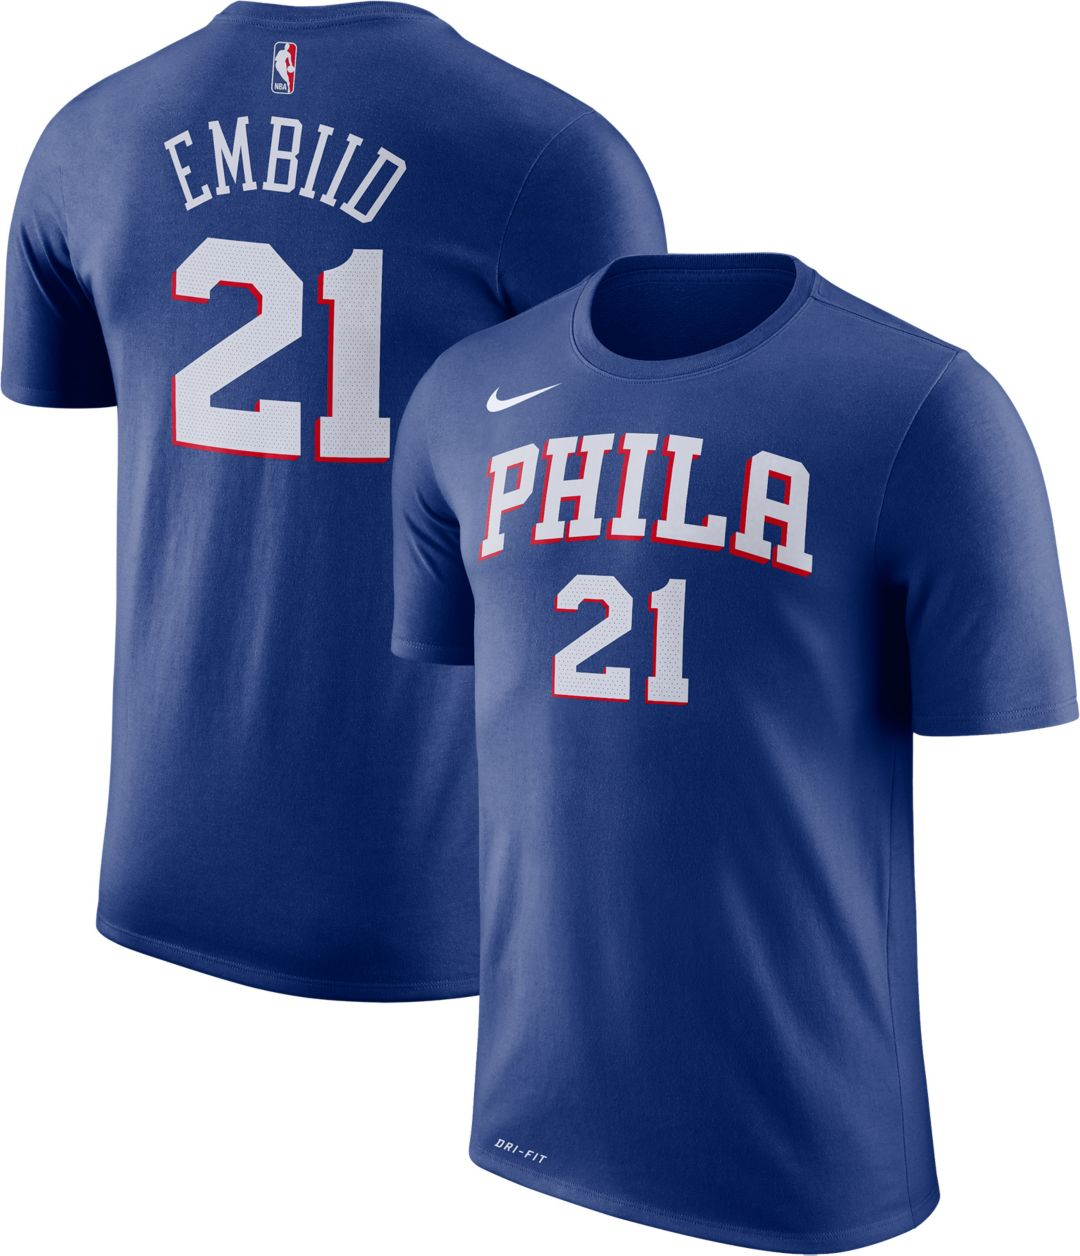 official photos b0d35 75ac6 Nike Men's Philadelphia 76ers Joel Embiid #21 Dri-FIT Royal T-Shirt